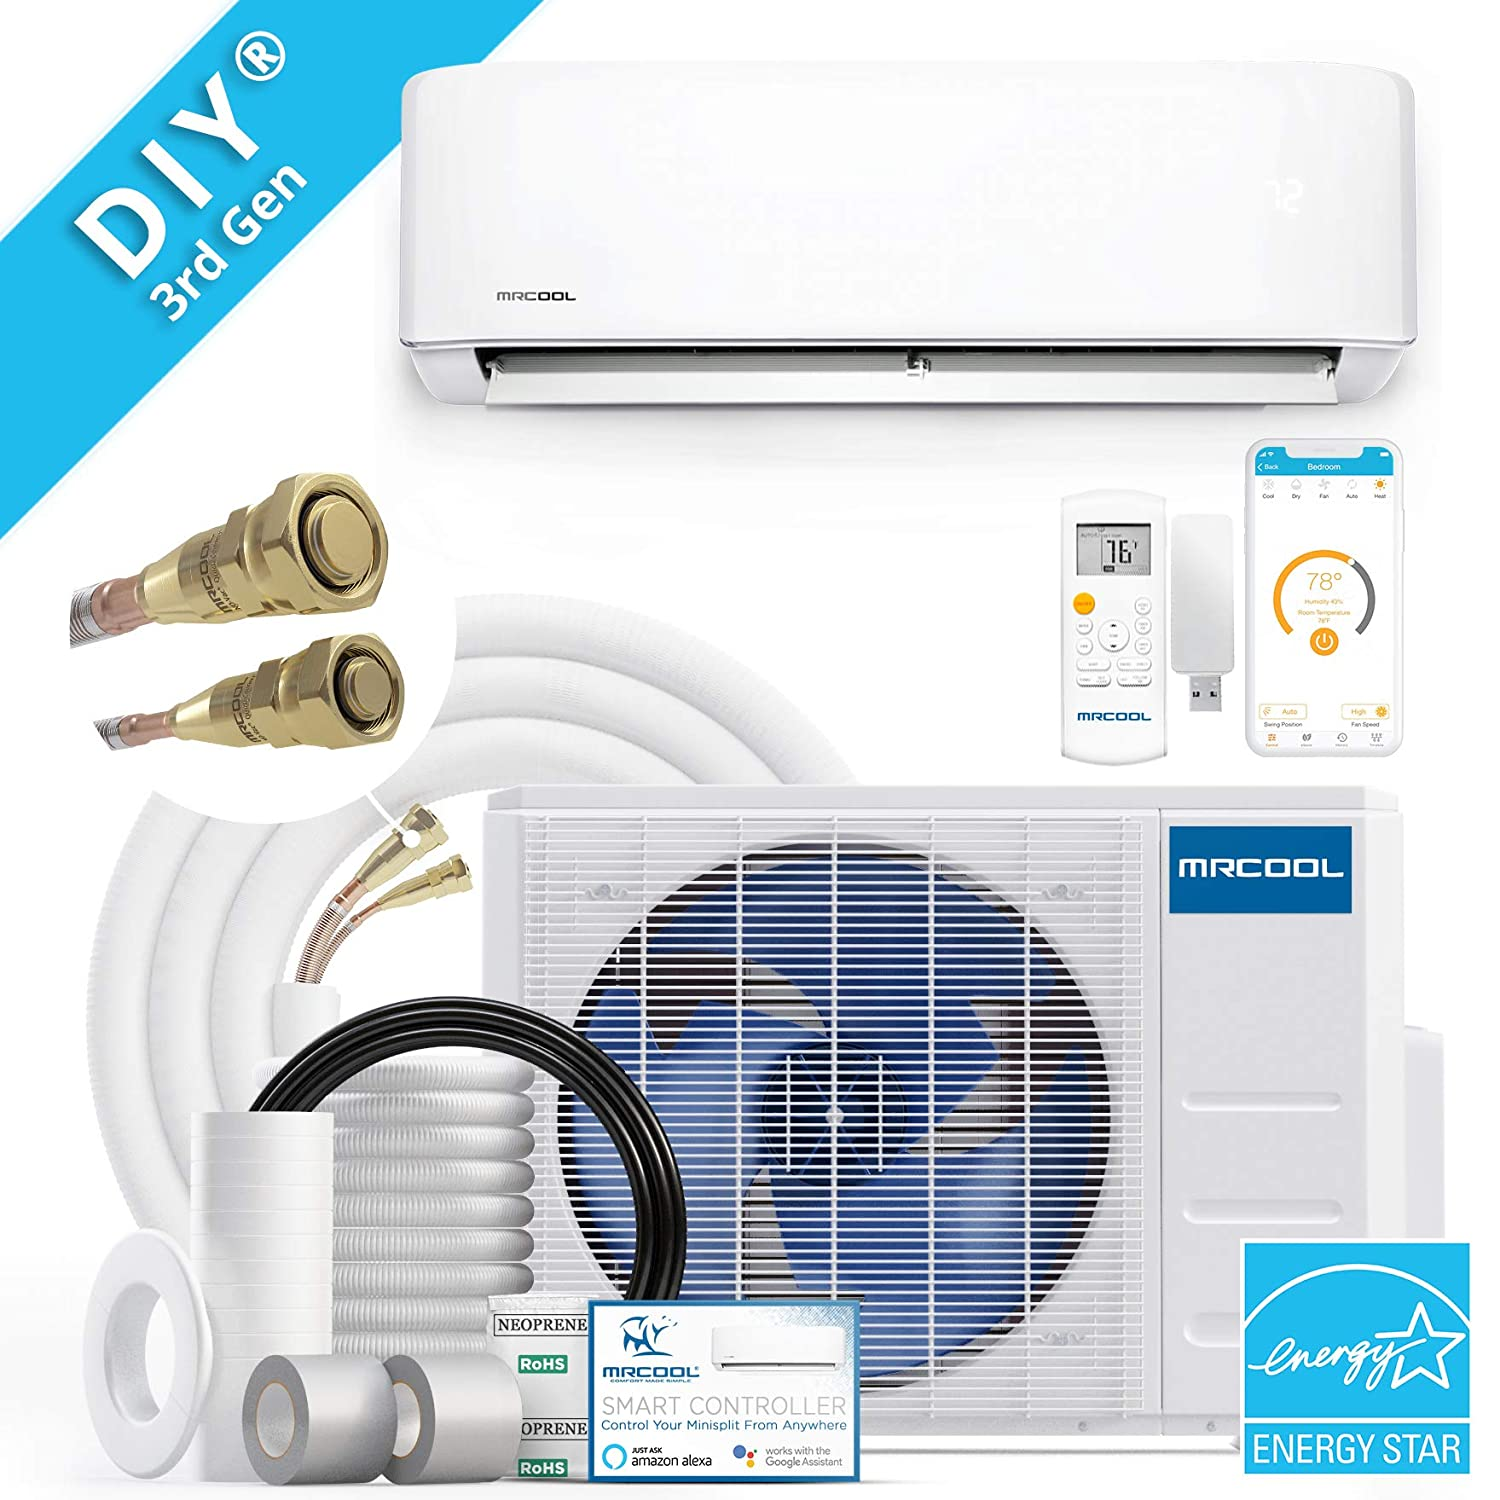 MRCOOL DIY 18k BTU 20 SEER Ductless Heat Pump Split System 3rd Generation - Energy Star 230v